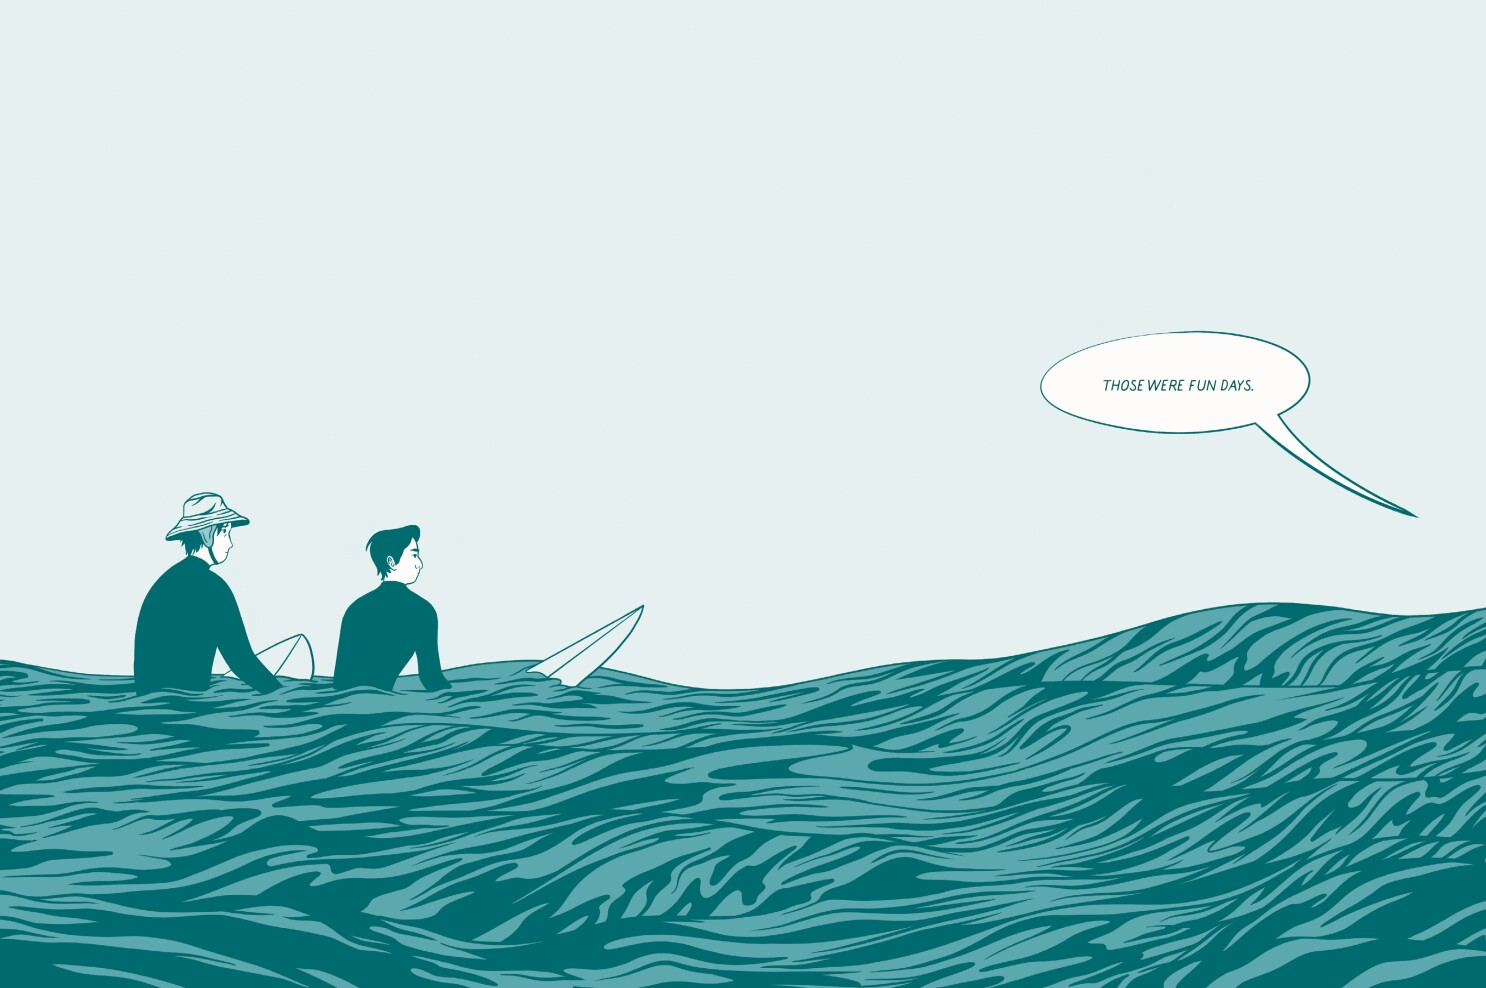 Review: A lover of surfing, AJ Dungo finds connection and solace in 'In Waves'